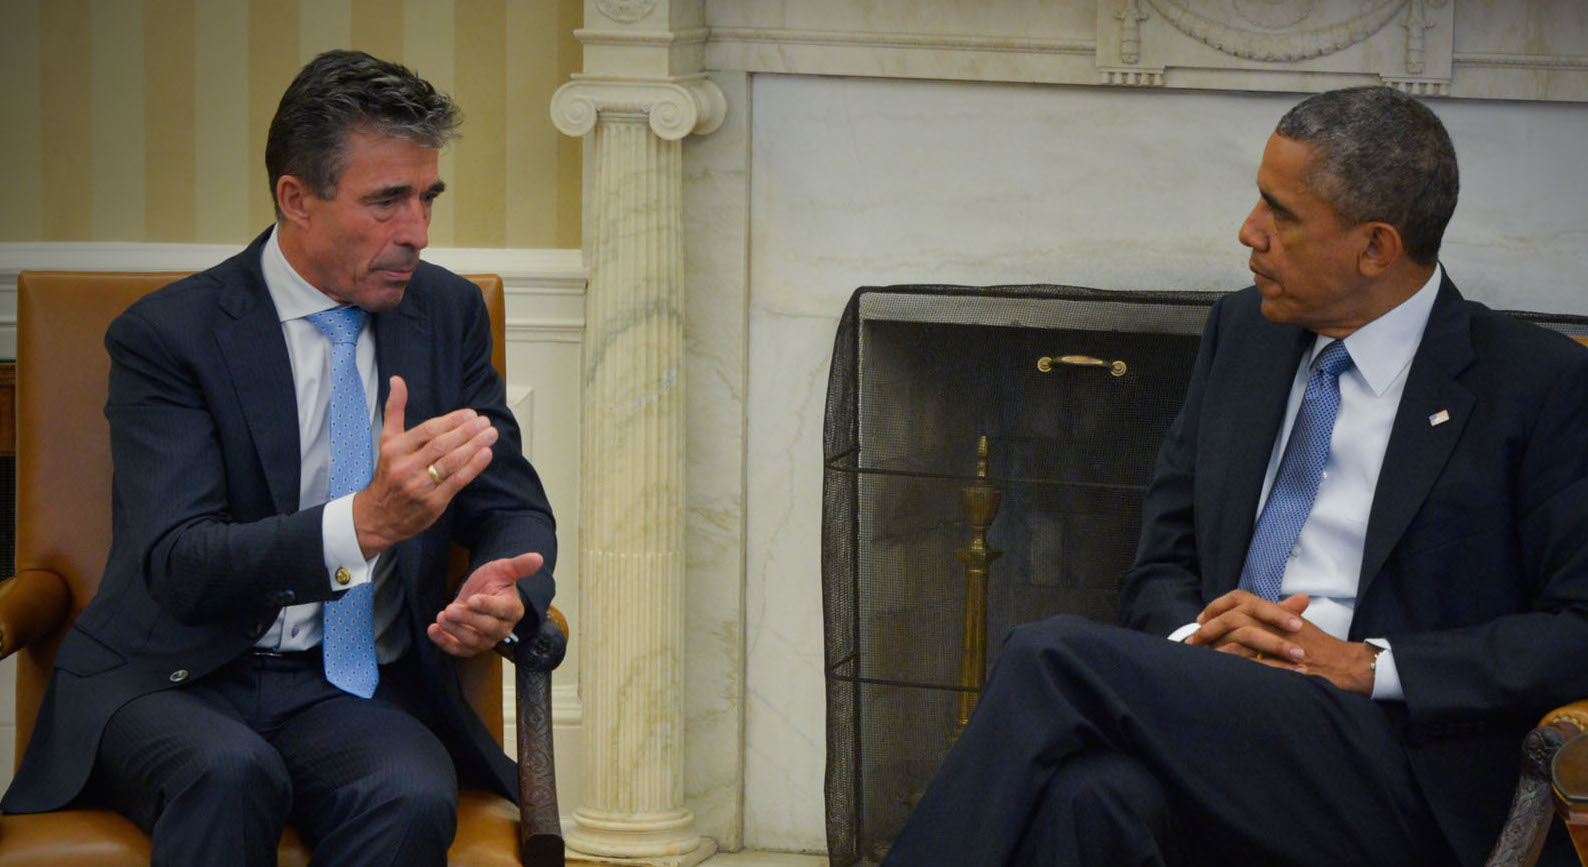 NATO Secretary General Anders Fogh Rasmussen and US President Barack Obama at the White House. NATO Photo